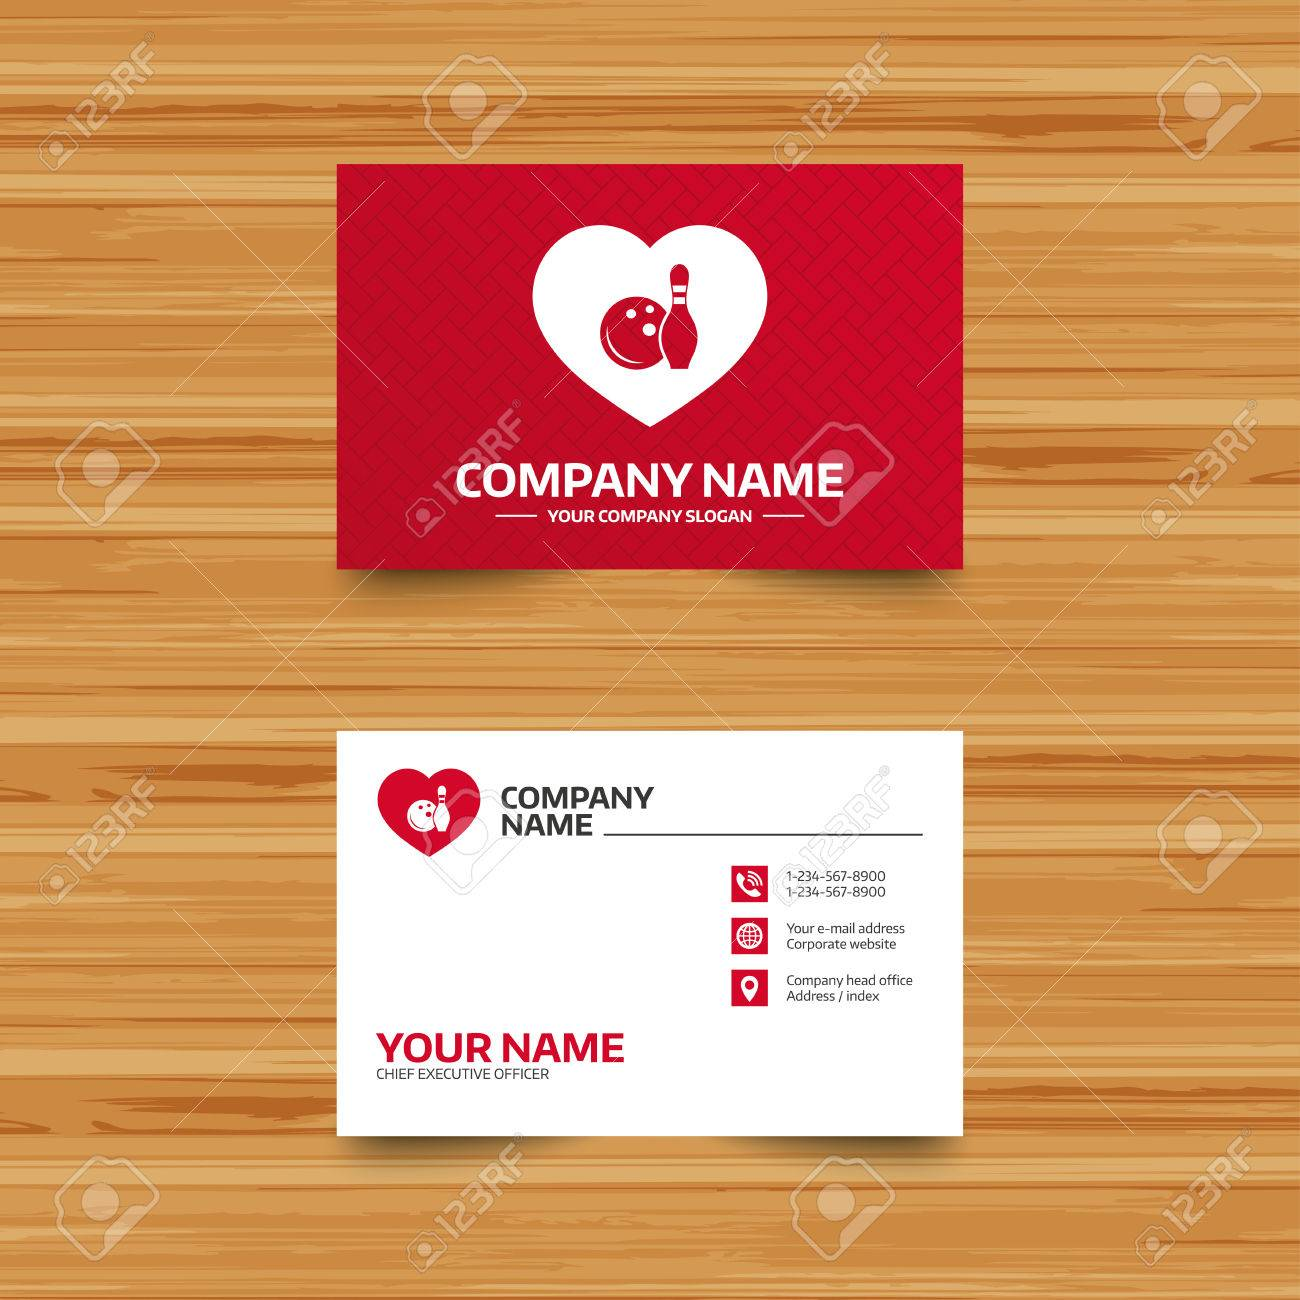 Business cards trenton nj gallery card design and card template business cards trenton nj gallery card design and card template business cards trenton nj image collections reheart Image collections